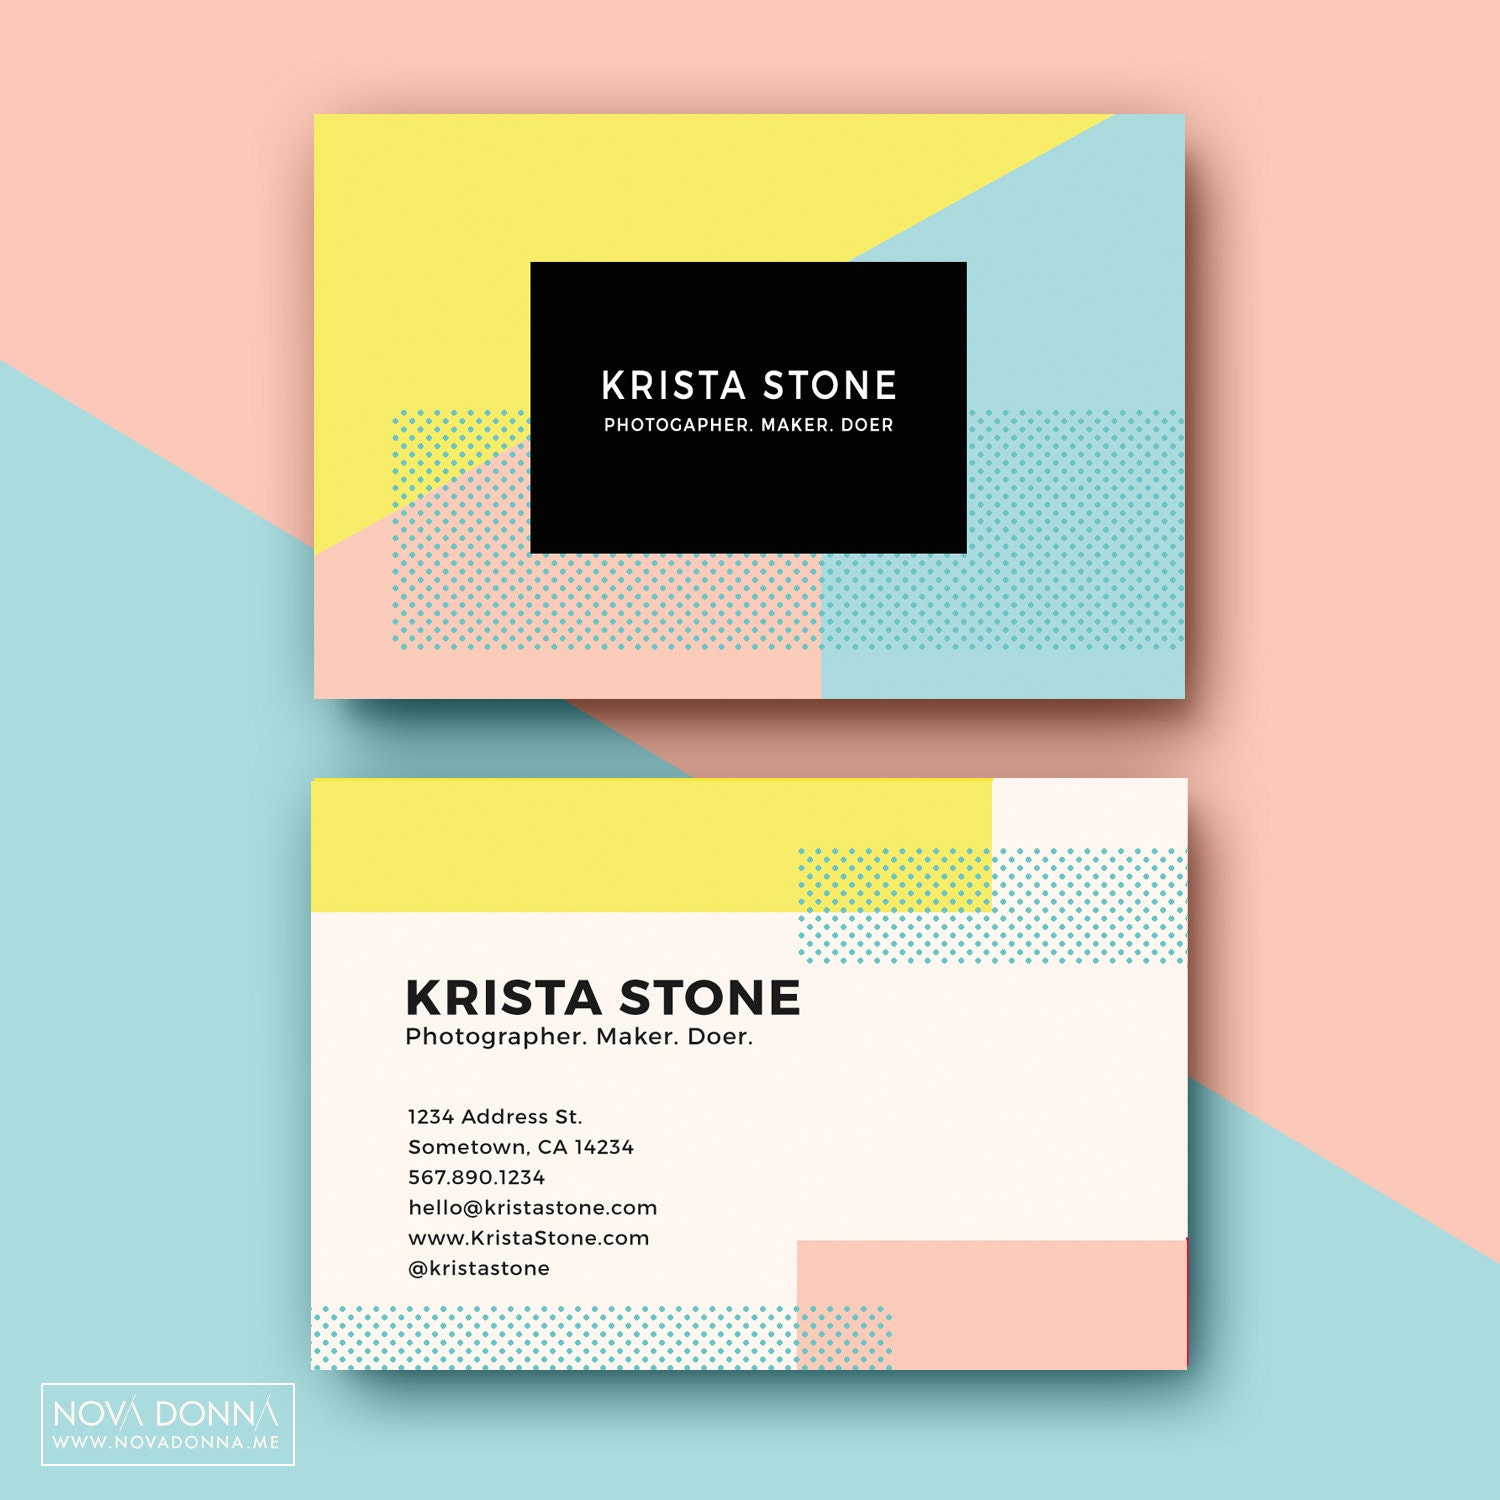 Business card templates design customizable adobe photoshop for Business card designs templates